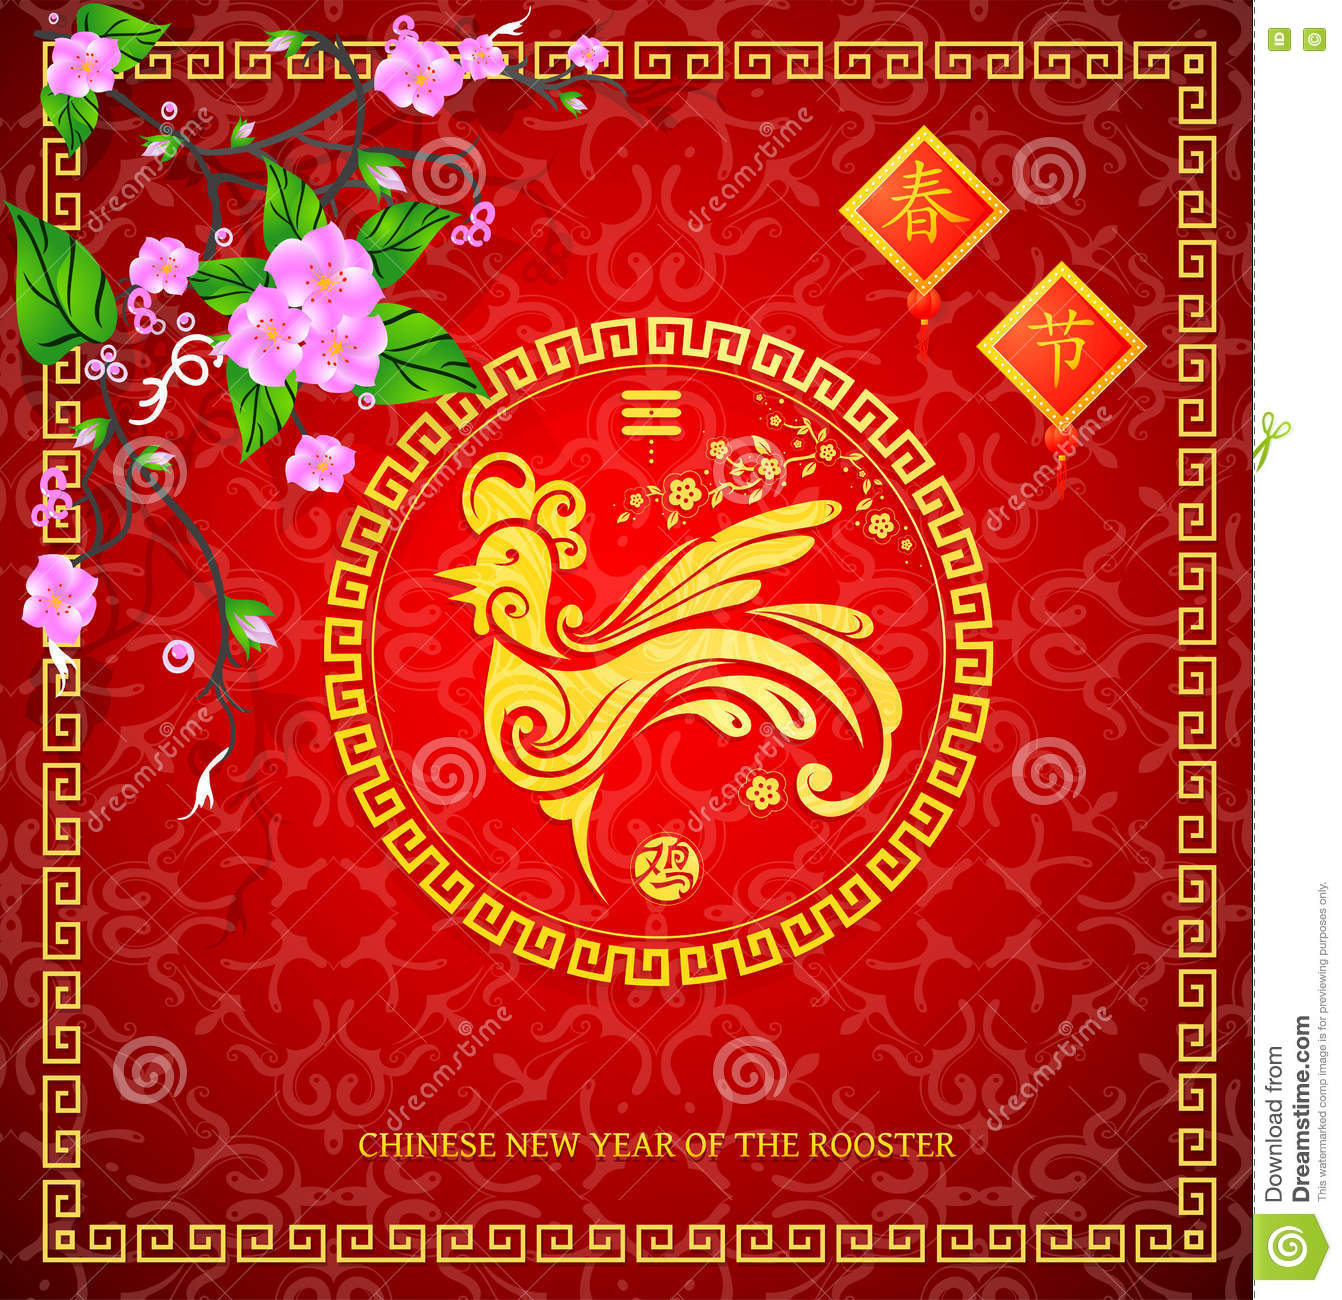 Chinese new year of the rooster greeting card stock vector chinese greeting card design with golden rooster and sakura blossom hieroglyphs translation chinese new year m4hsunfo